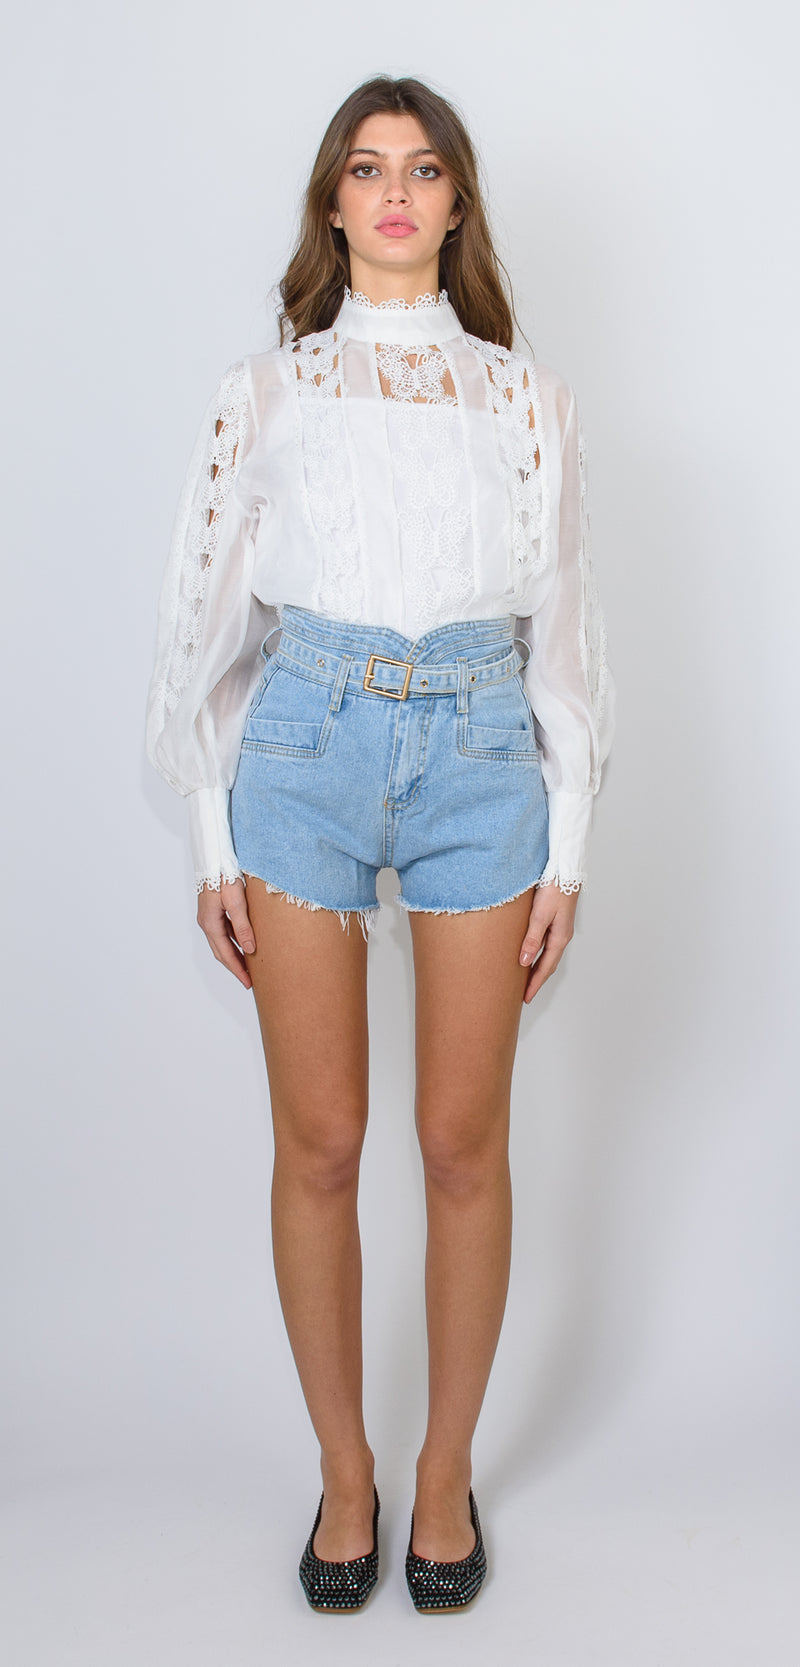 Odì Odì High-waisted denim shorts with belt